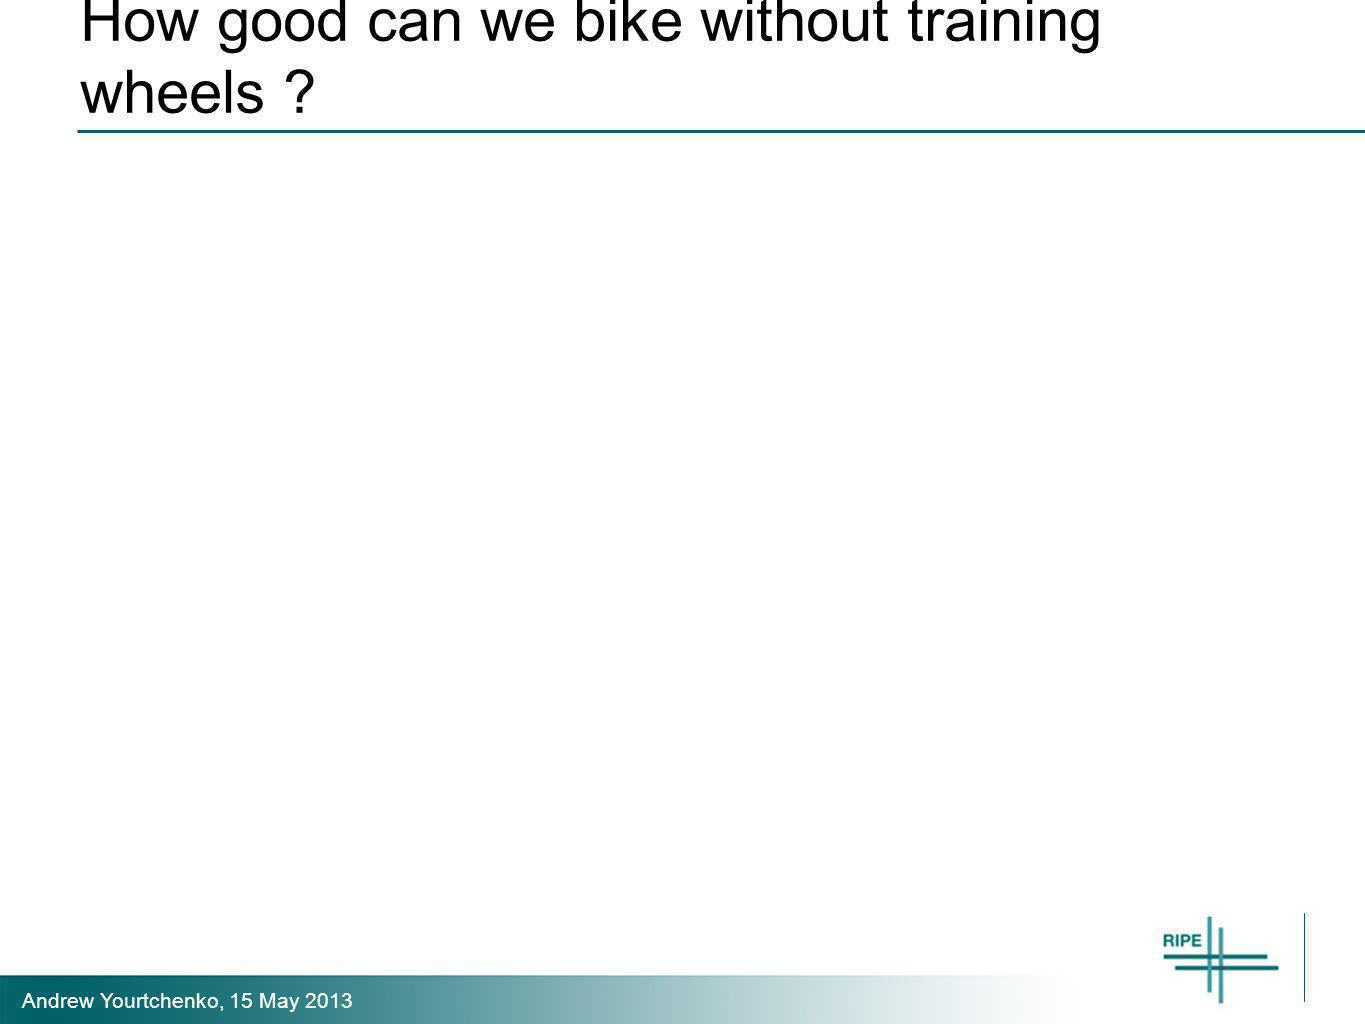 Andrew Yourtchenko, 15 May 2013 How good can we bike without training wheels ?